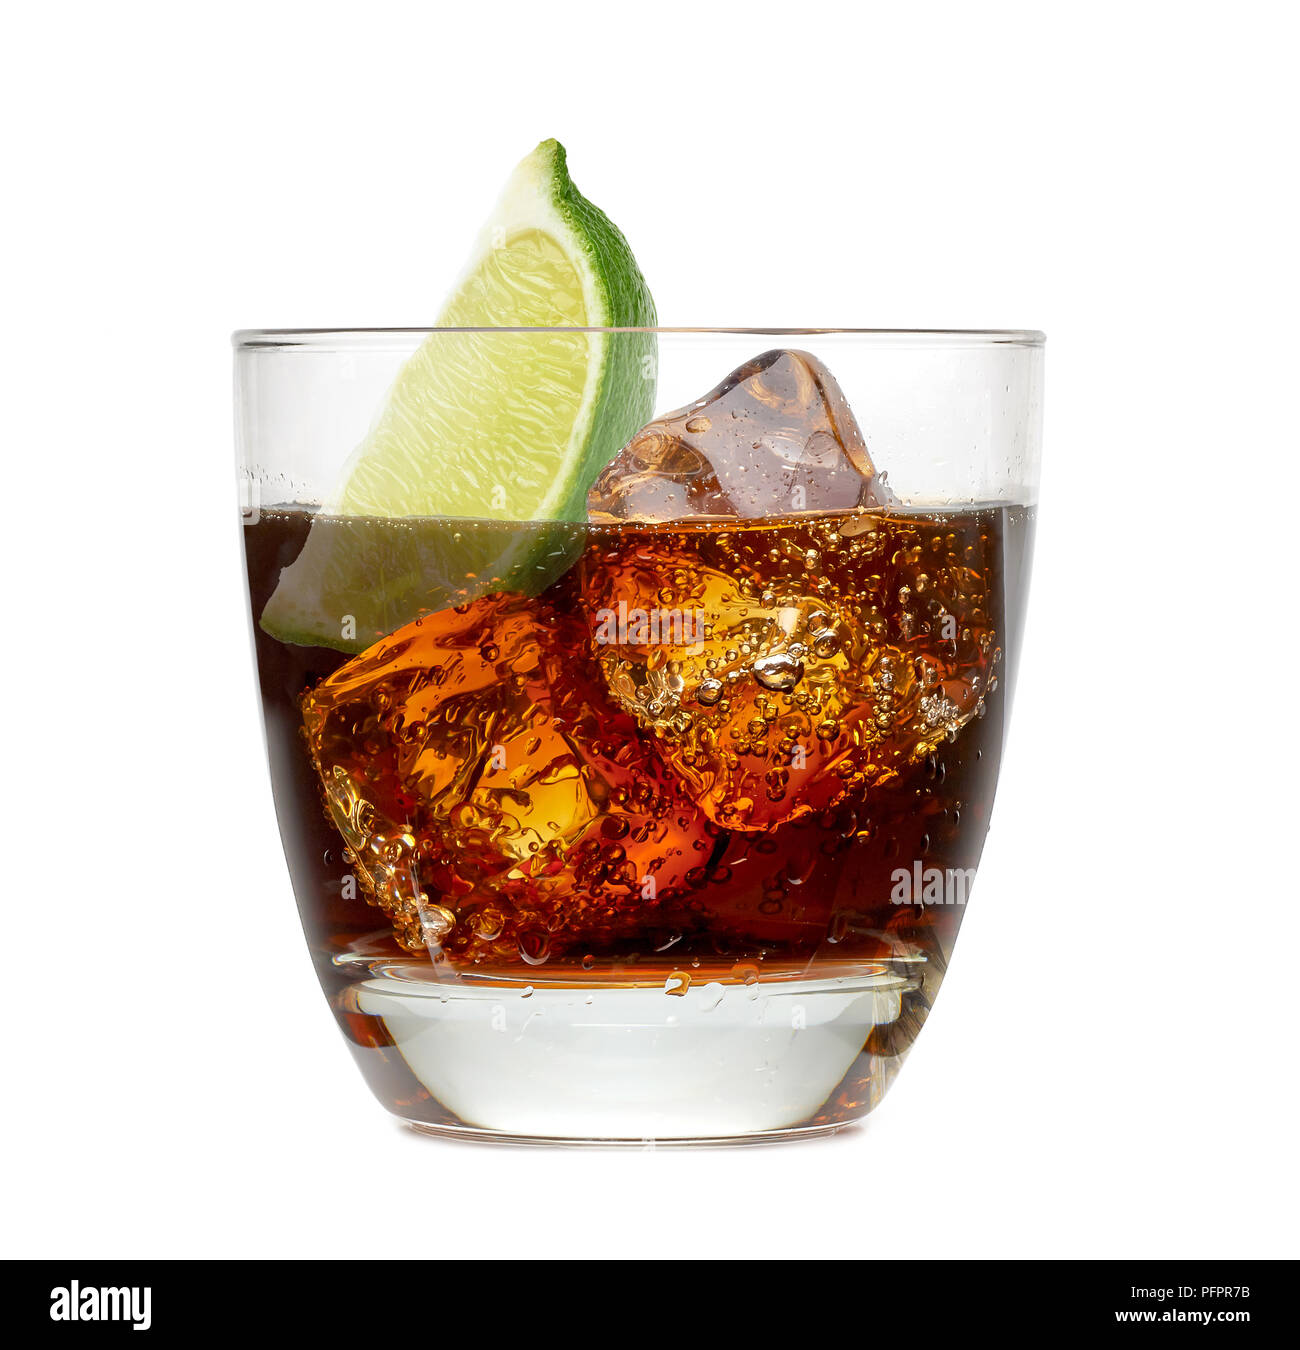 Cuba Libre Drink Coca Cola In Glass With Ice Stock Photos And Coca Cola In